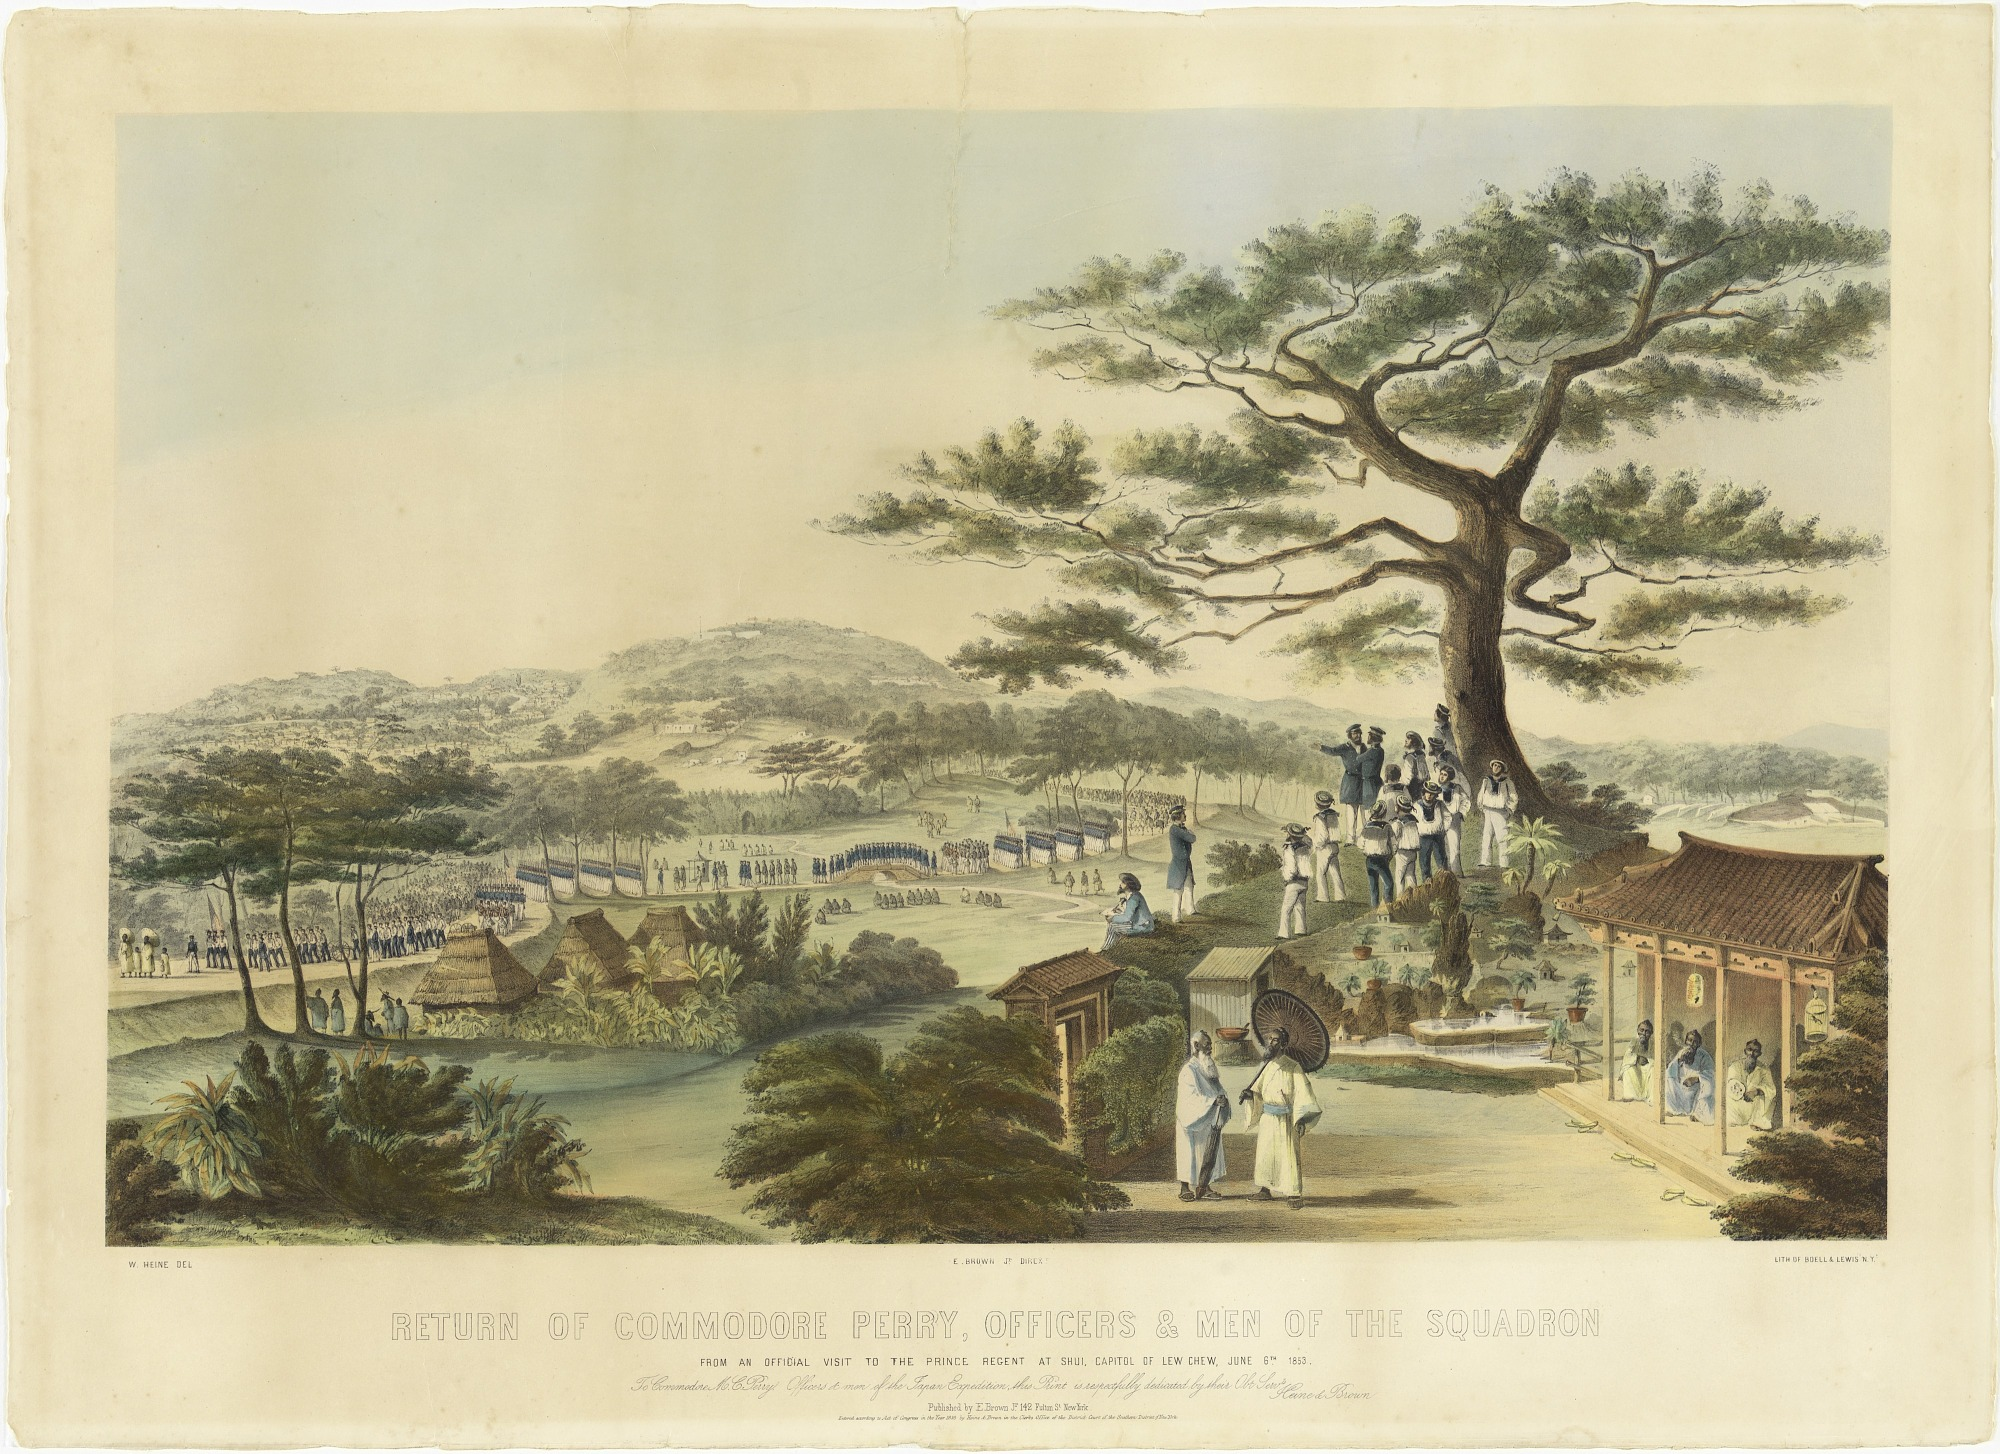 Return of Commodore Perry, Officers and Men of the Squadron from an Official Visit to the Prince Regent at Shui, Capitol of Lew Chew, June 6th 1853